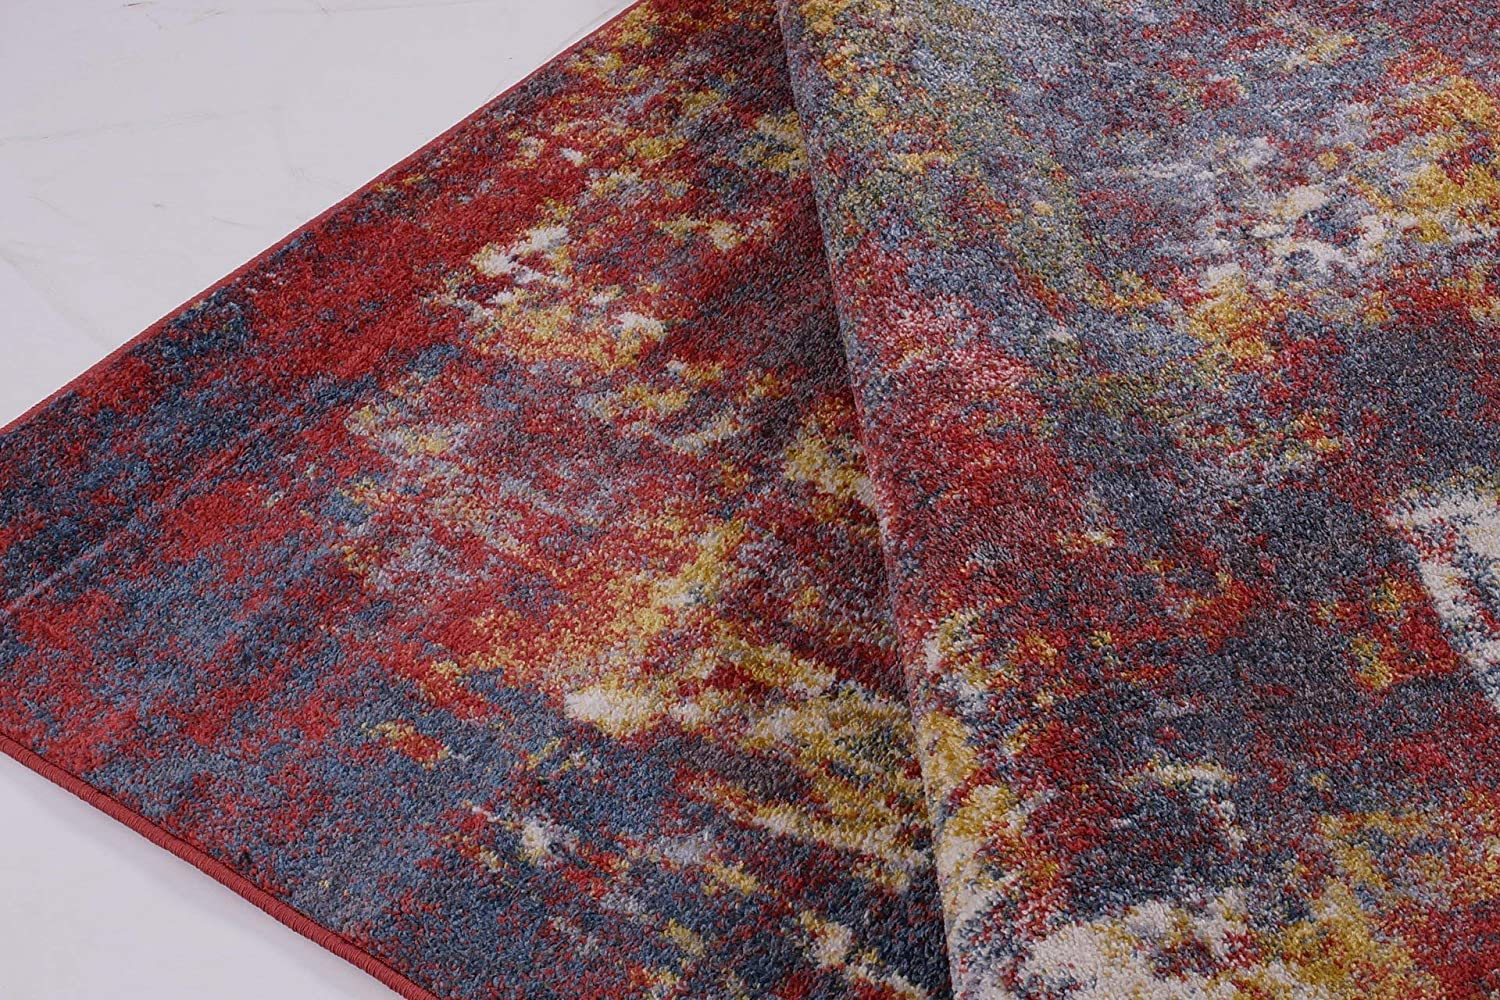 LaDole Rugs Terra Rustic Runner Rug Carpet for Hallways Entry Entrance Bedroom Kitchen 3x5 Approx 27x411 Feet